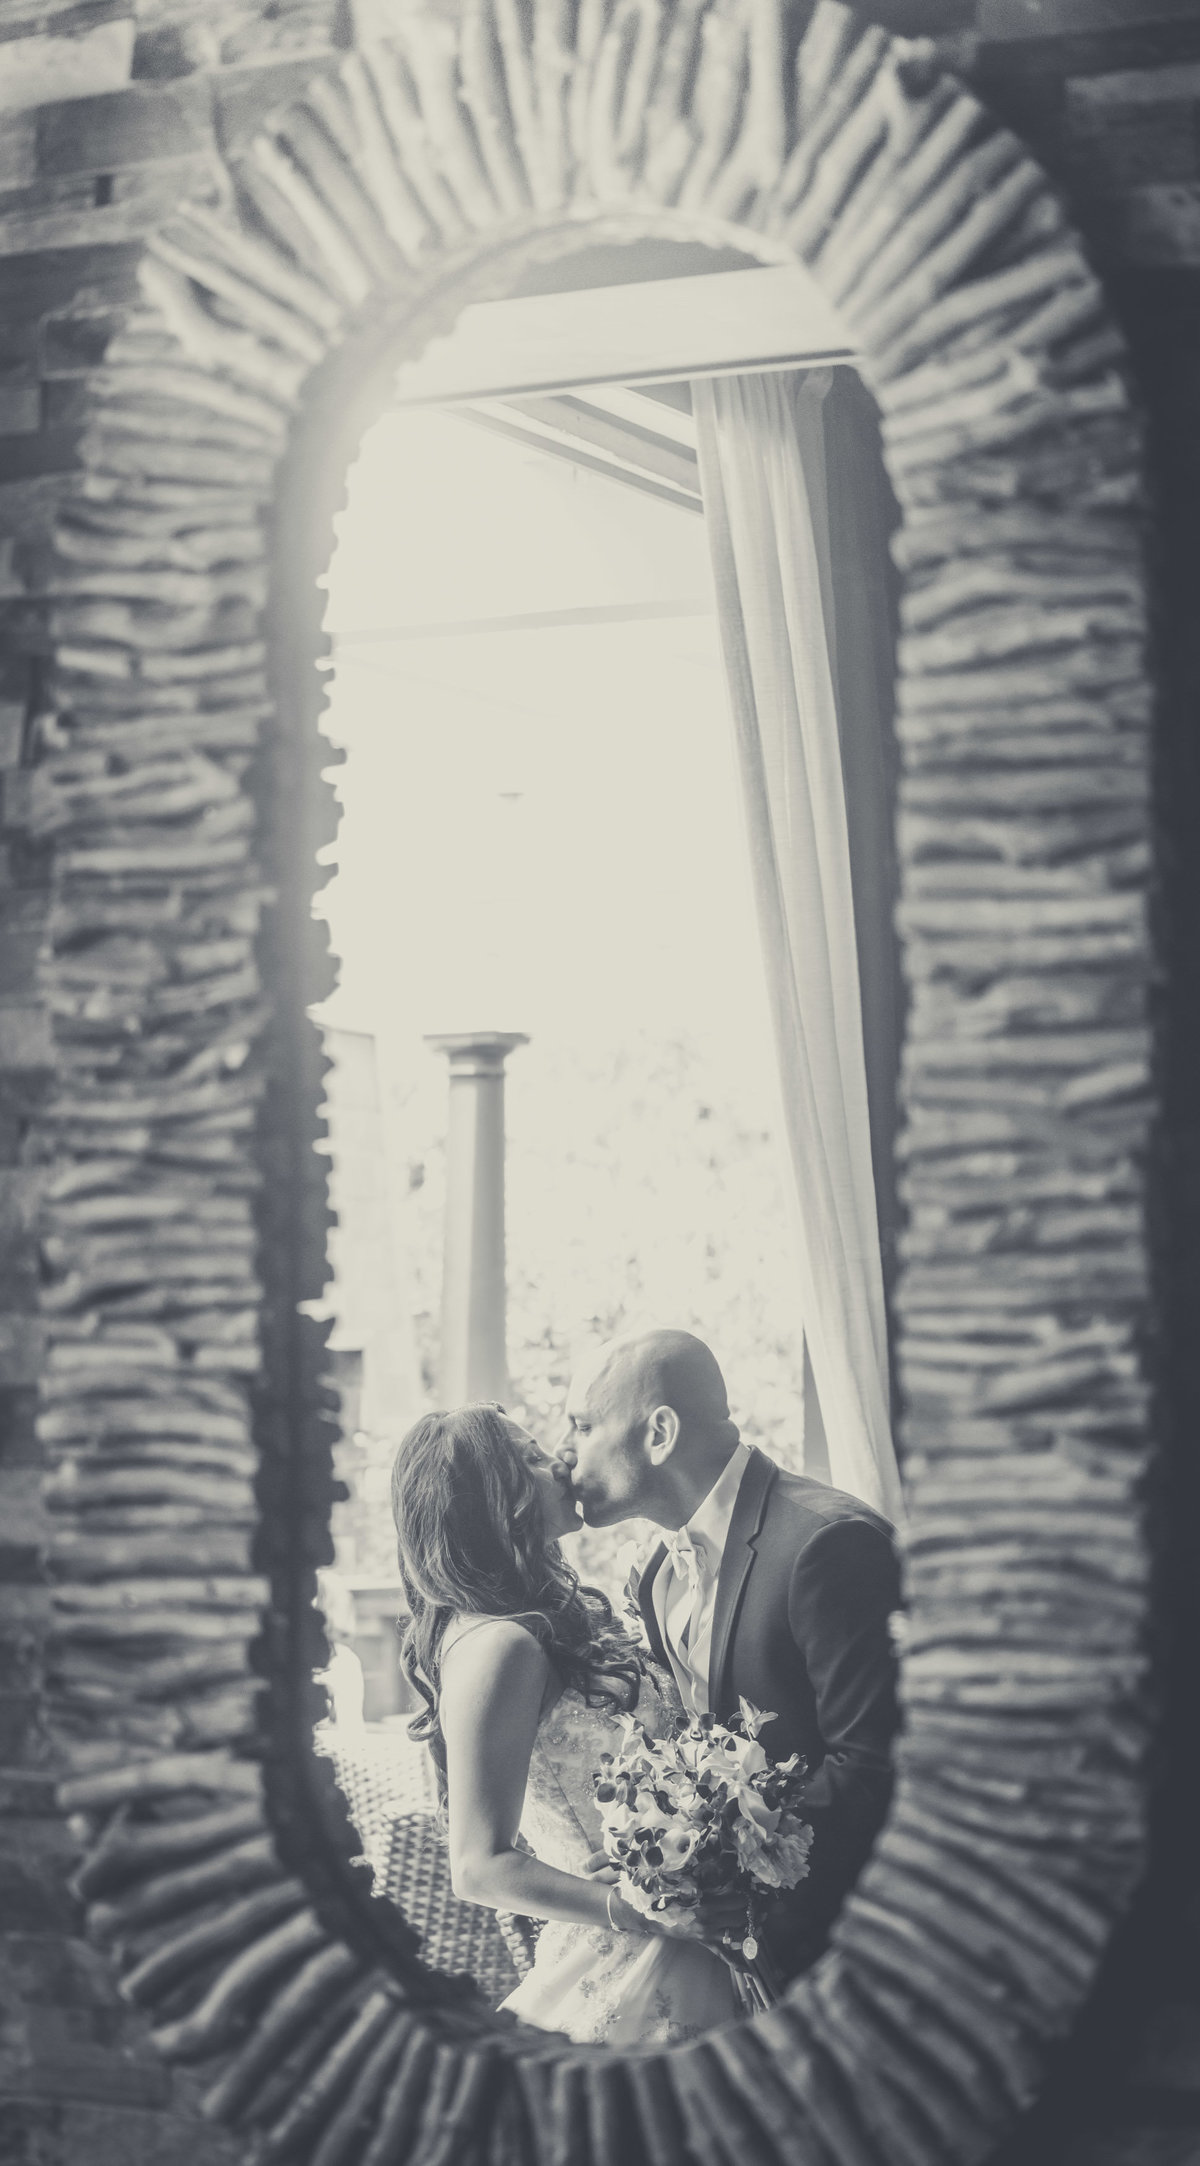 Wedding Portrait - Insignia Steak House, New York - Imagine Studios Photography - Wedding Photographer